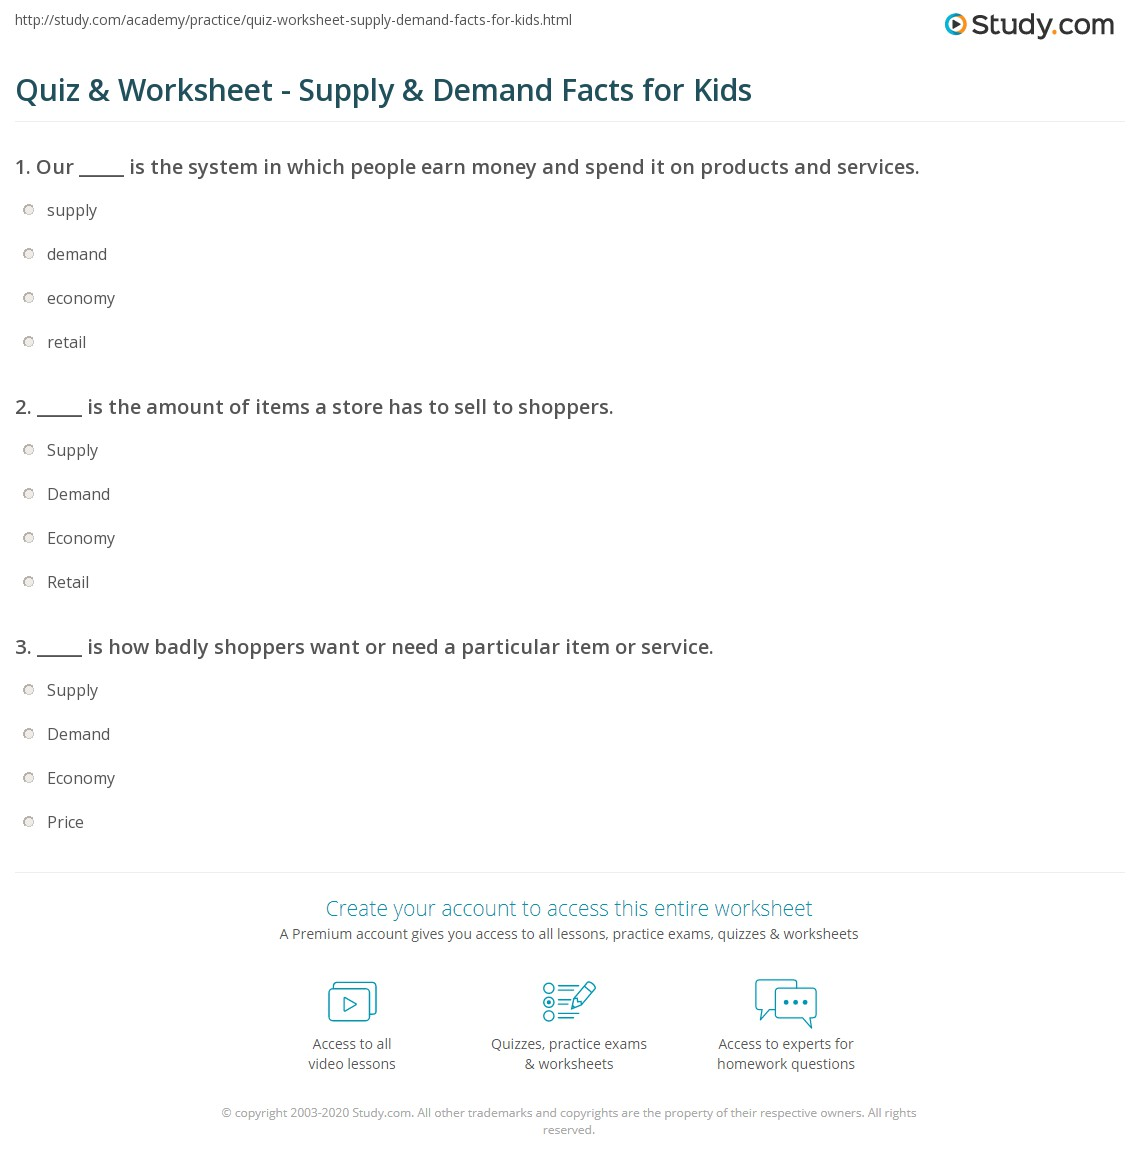 Quiz Worksheet Supply Demand Facts For Kids Study Com